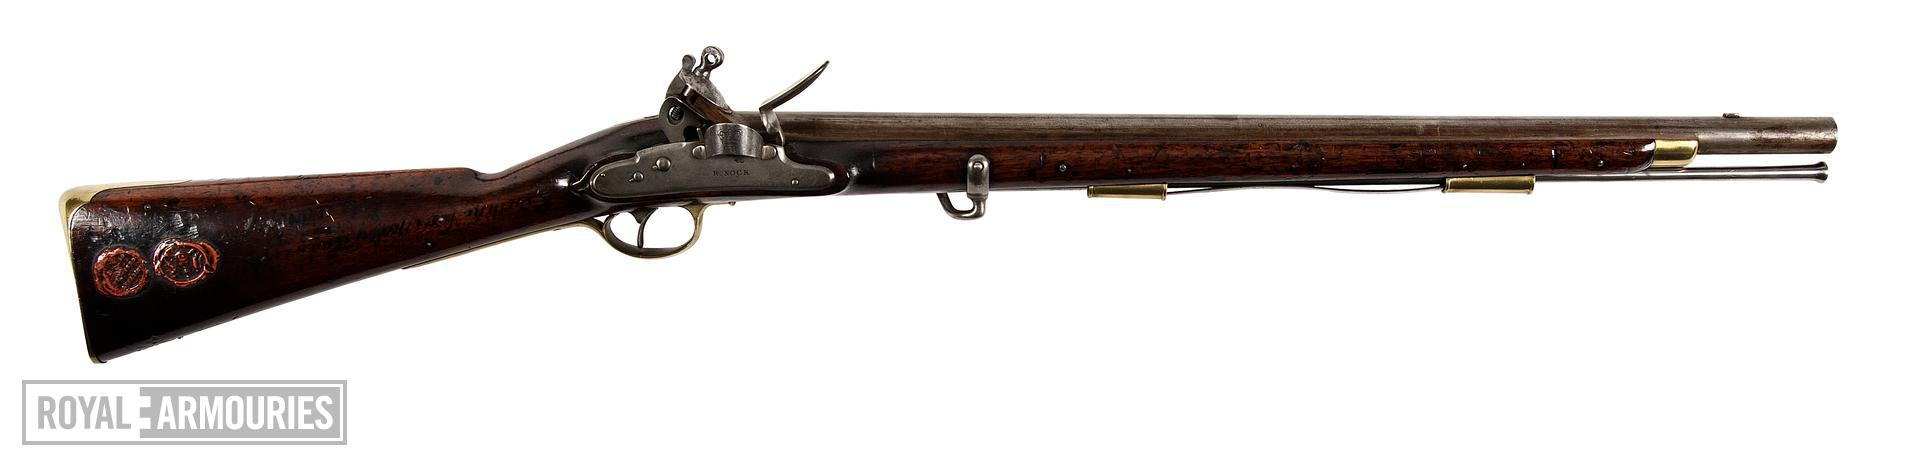 Heavy Dragoon Carbine. Pattern 1796, Britain, about 1808.  For 1st Dragoon Guards. By Henry Nock with his screwless lock. (XII.166)